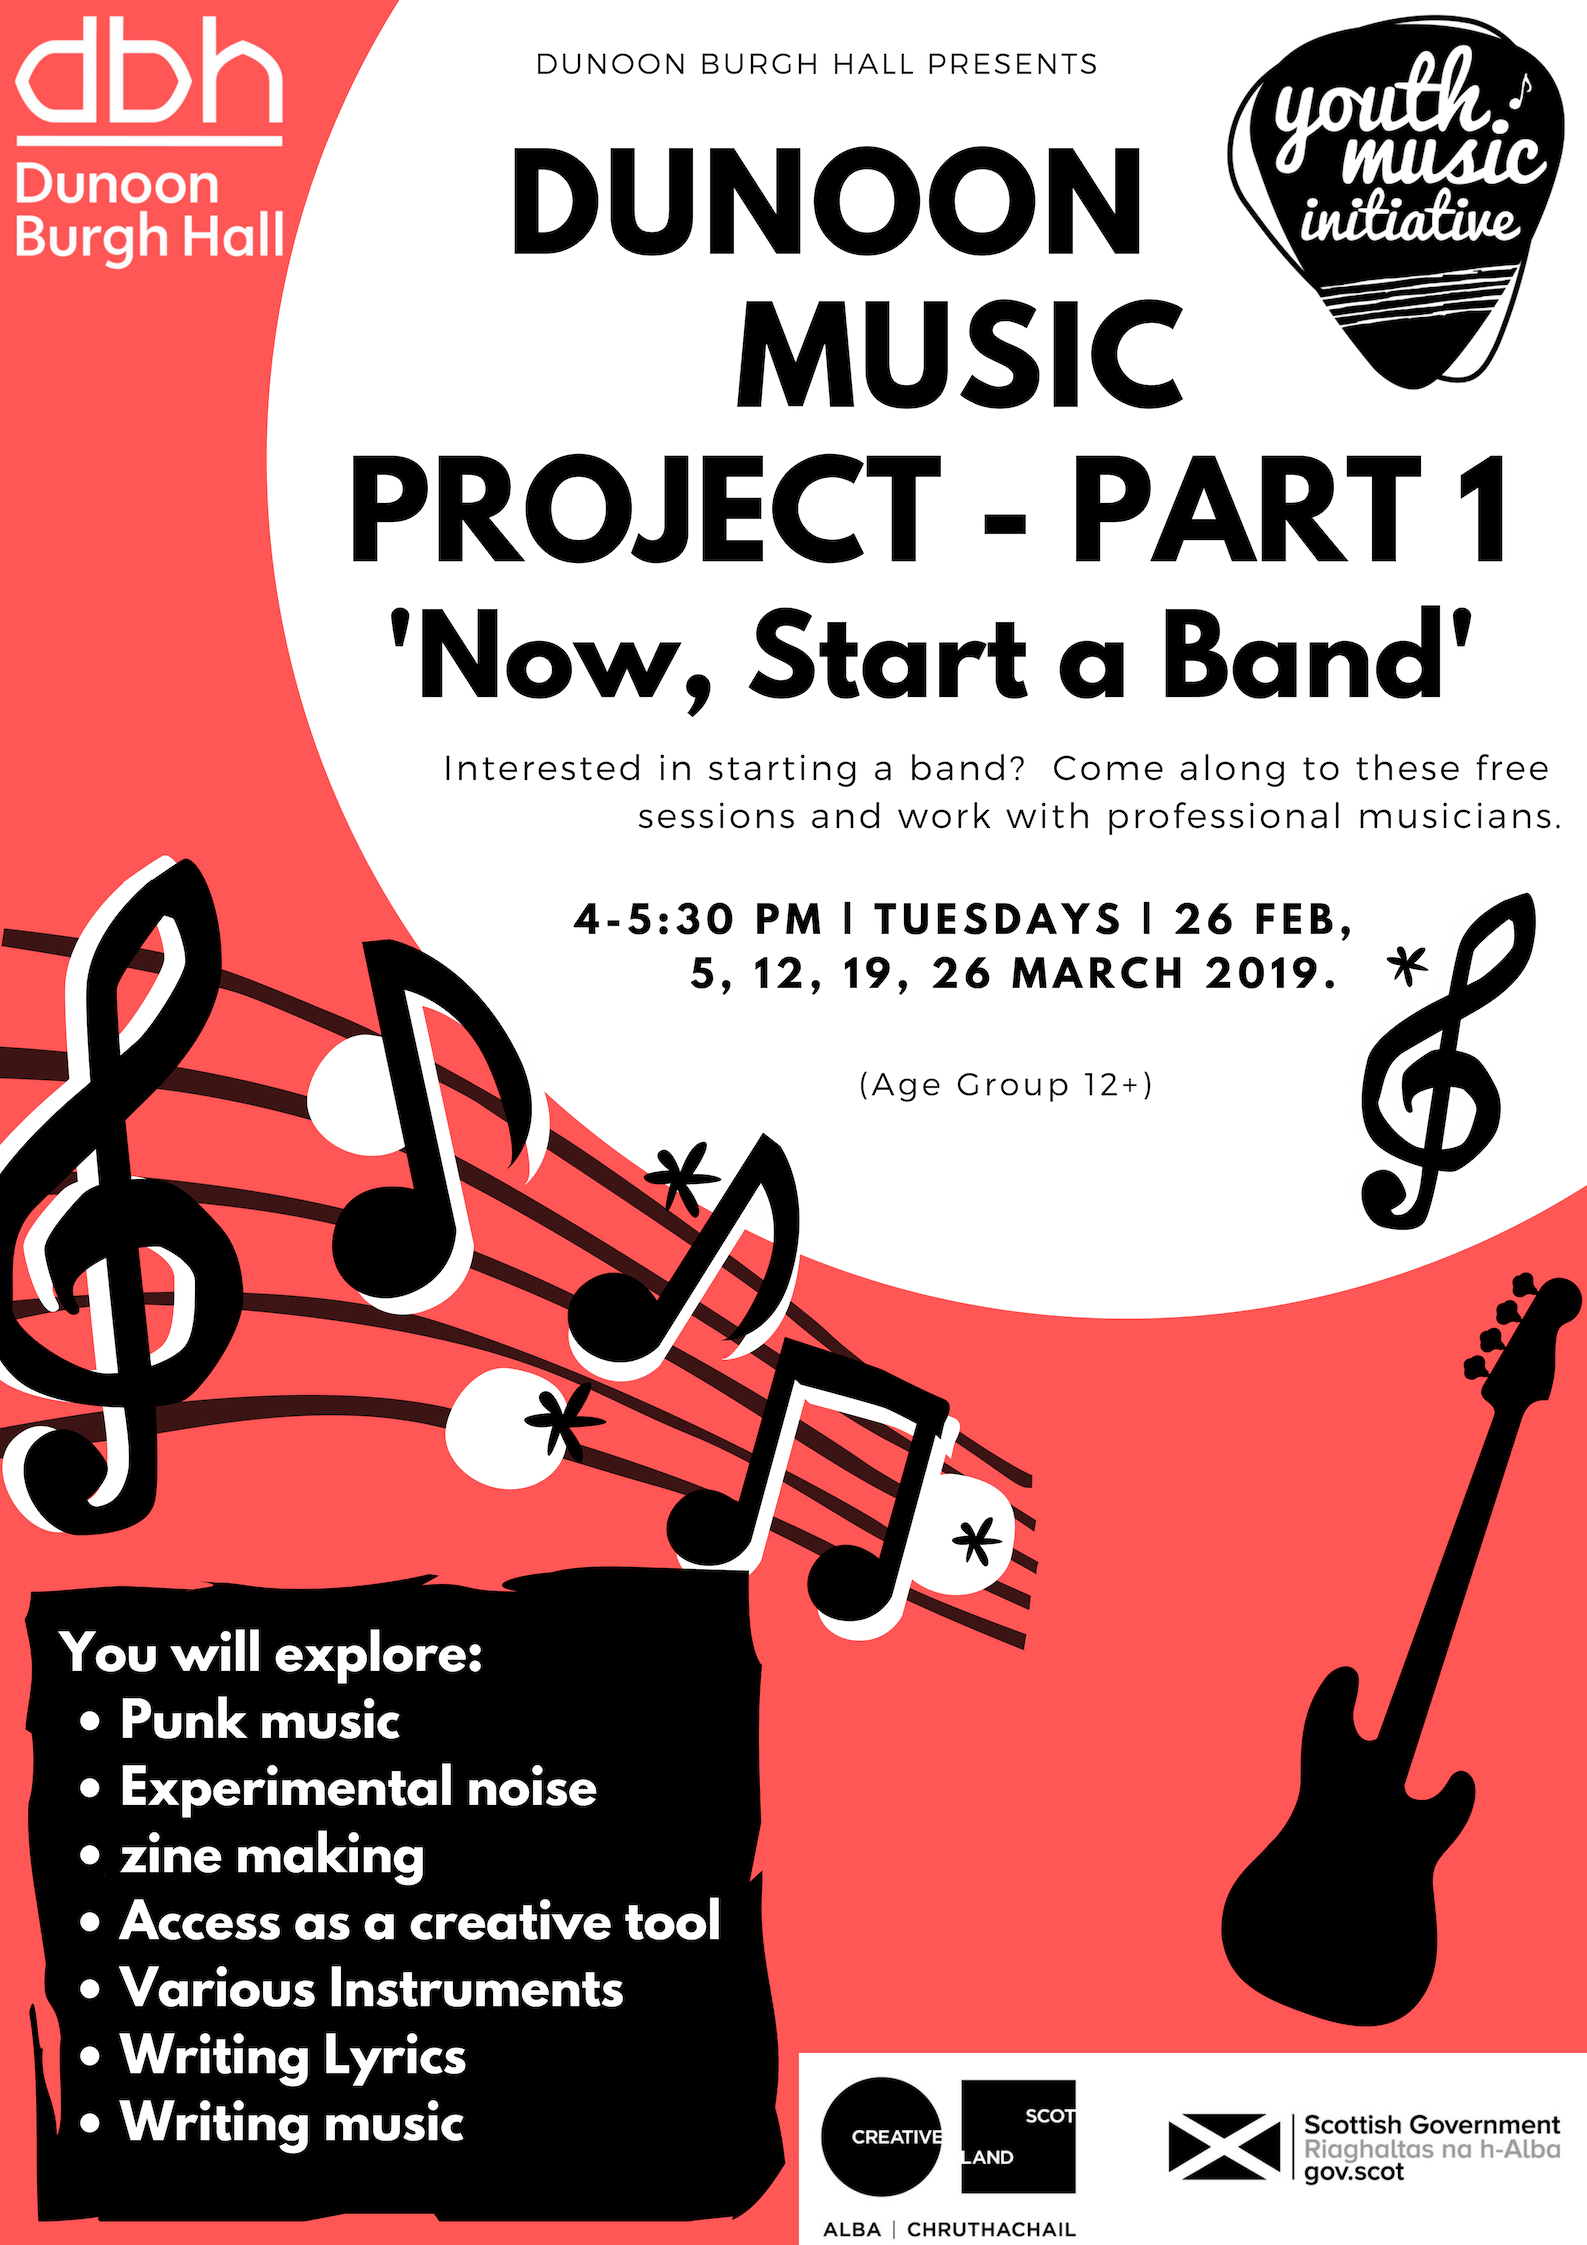 Dunoon Music Project